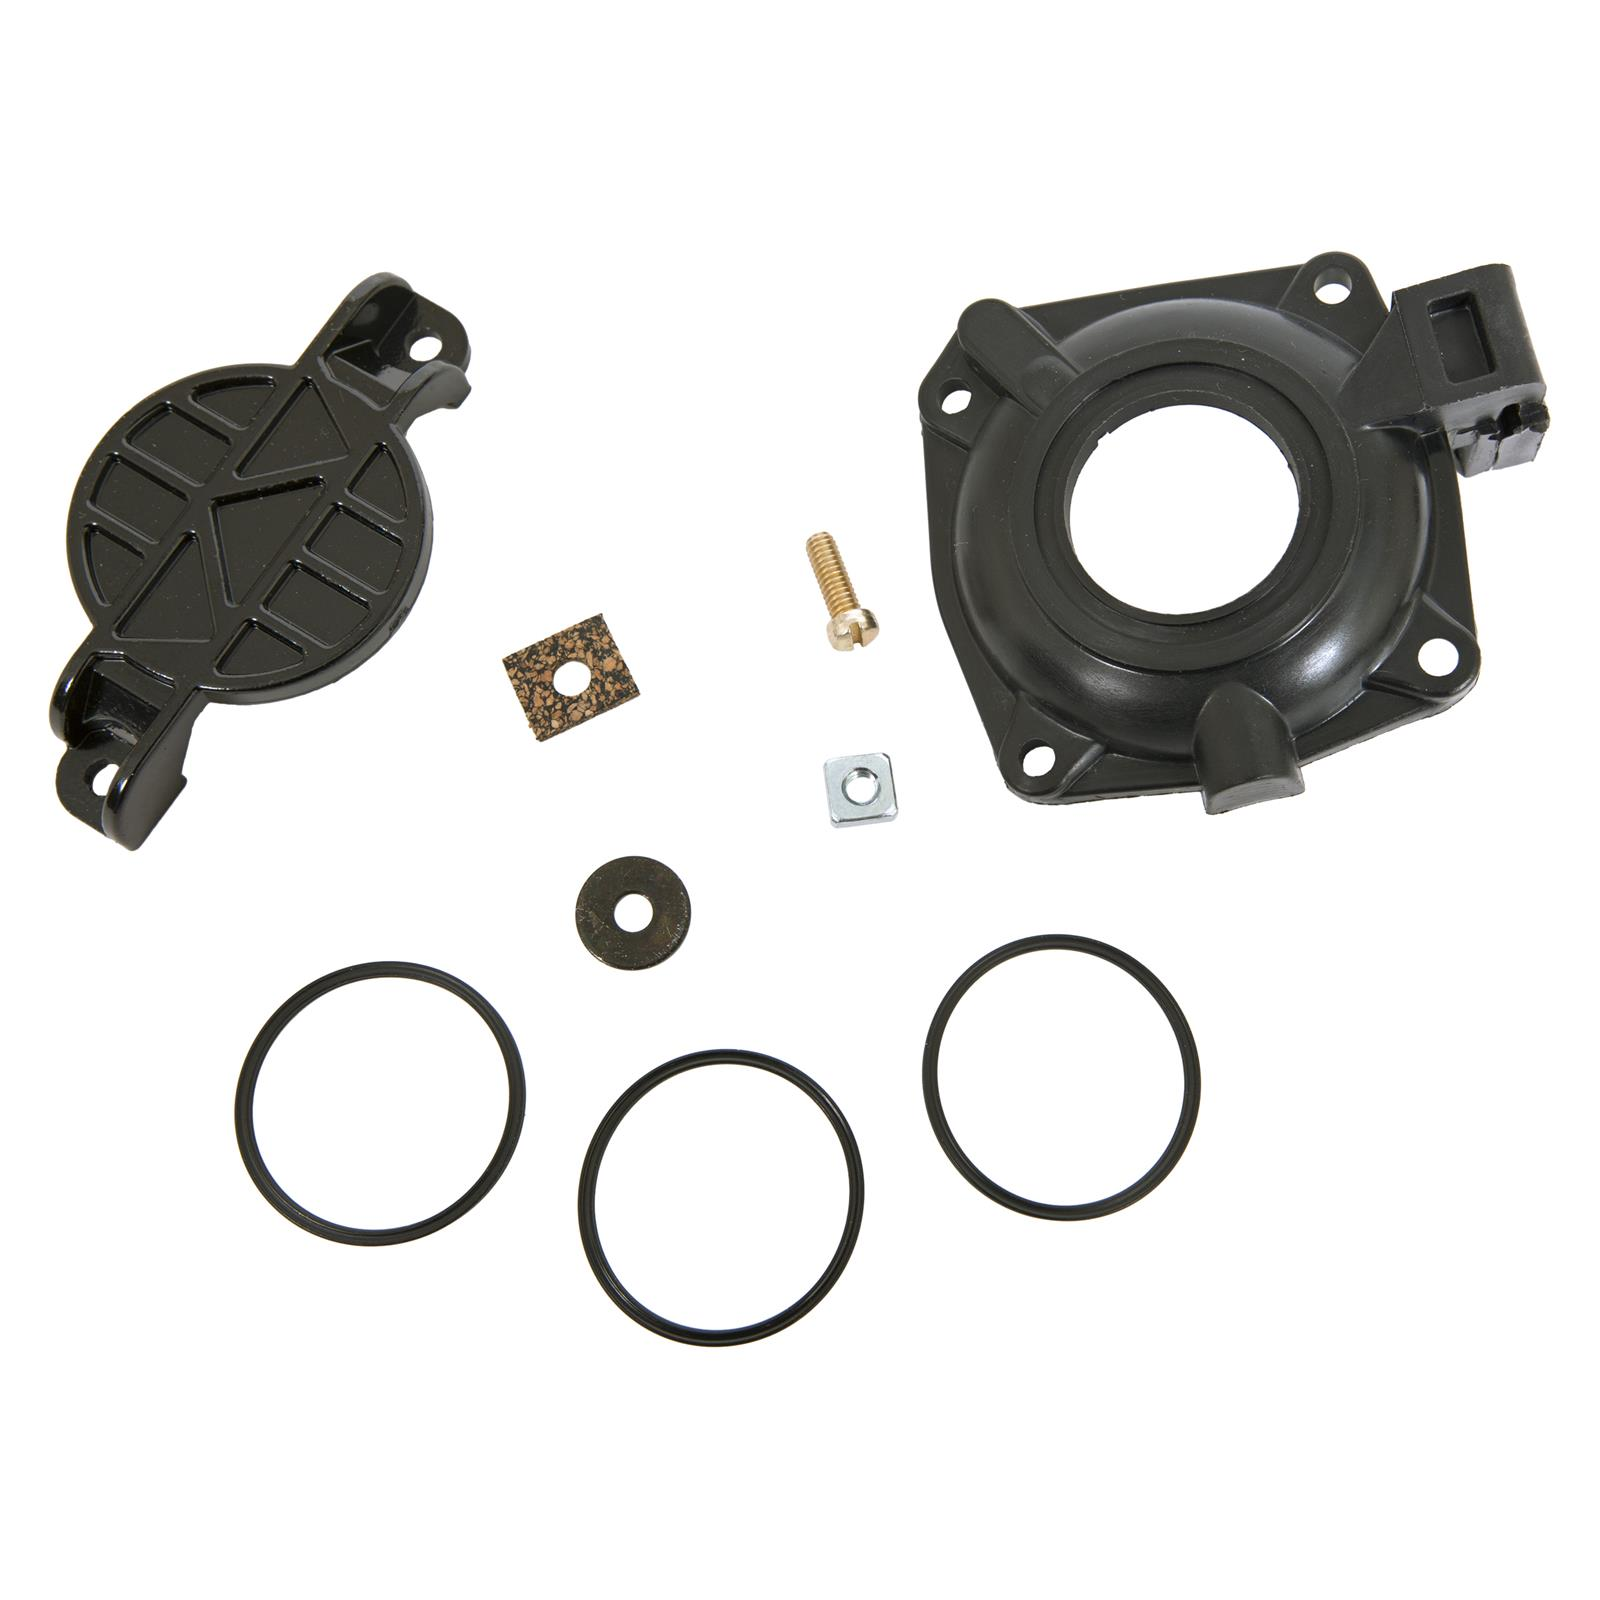 Holley 2 x 4 Quick Change Vacuum Secondary Cover Kit